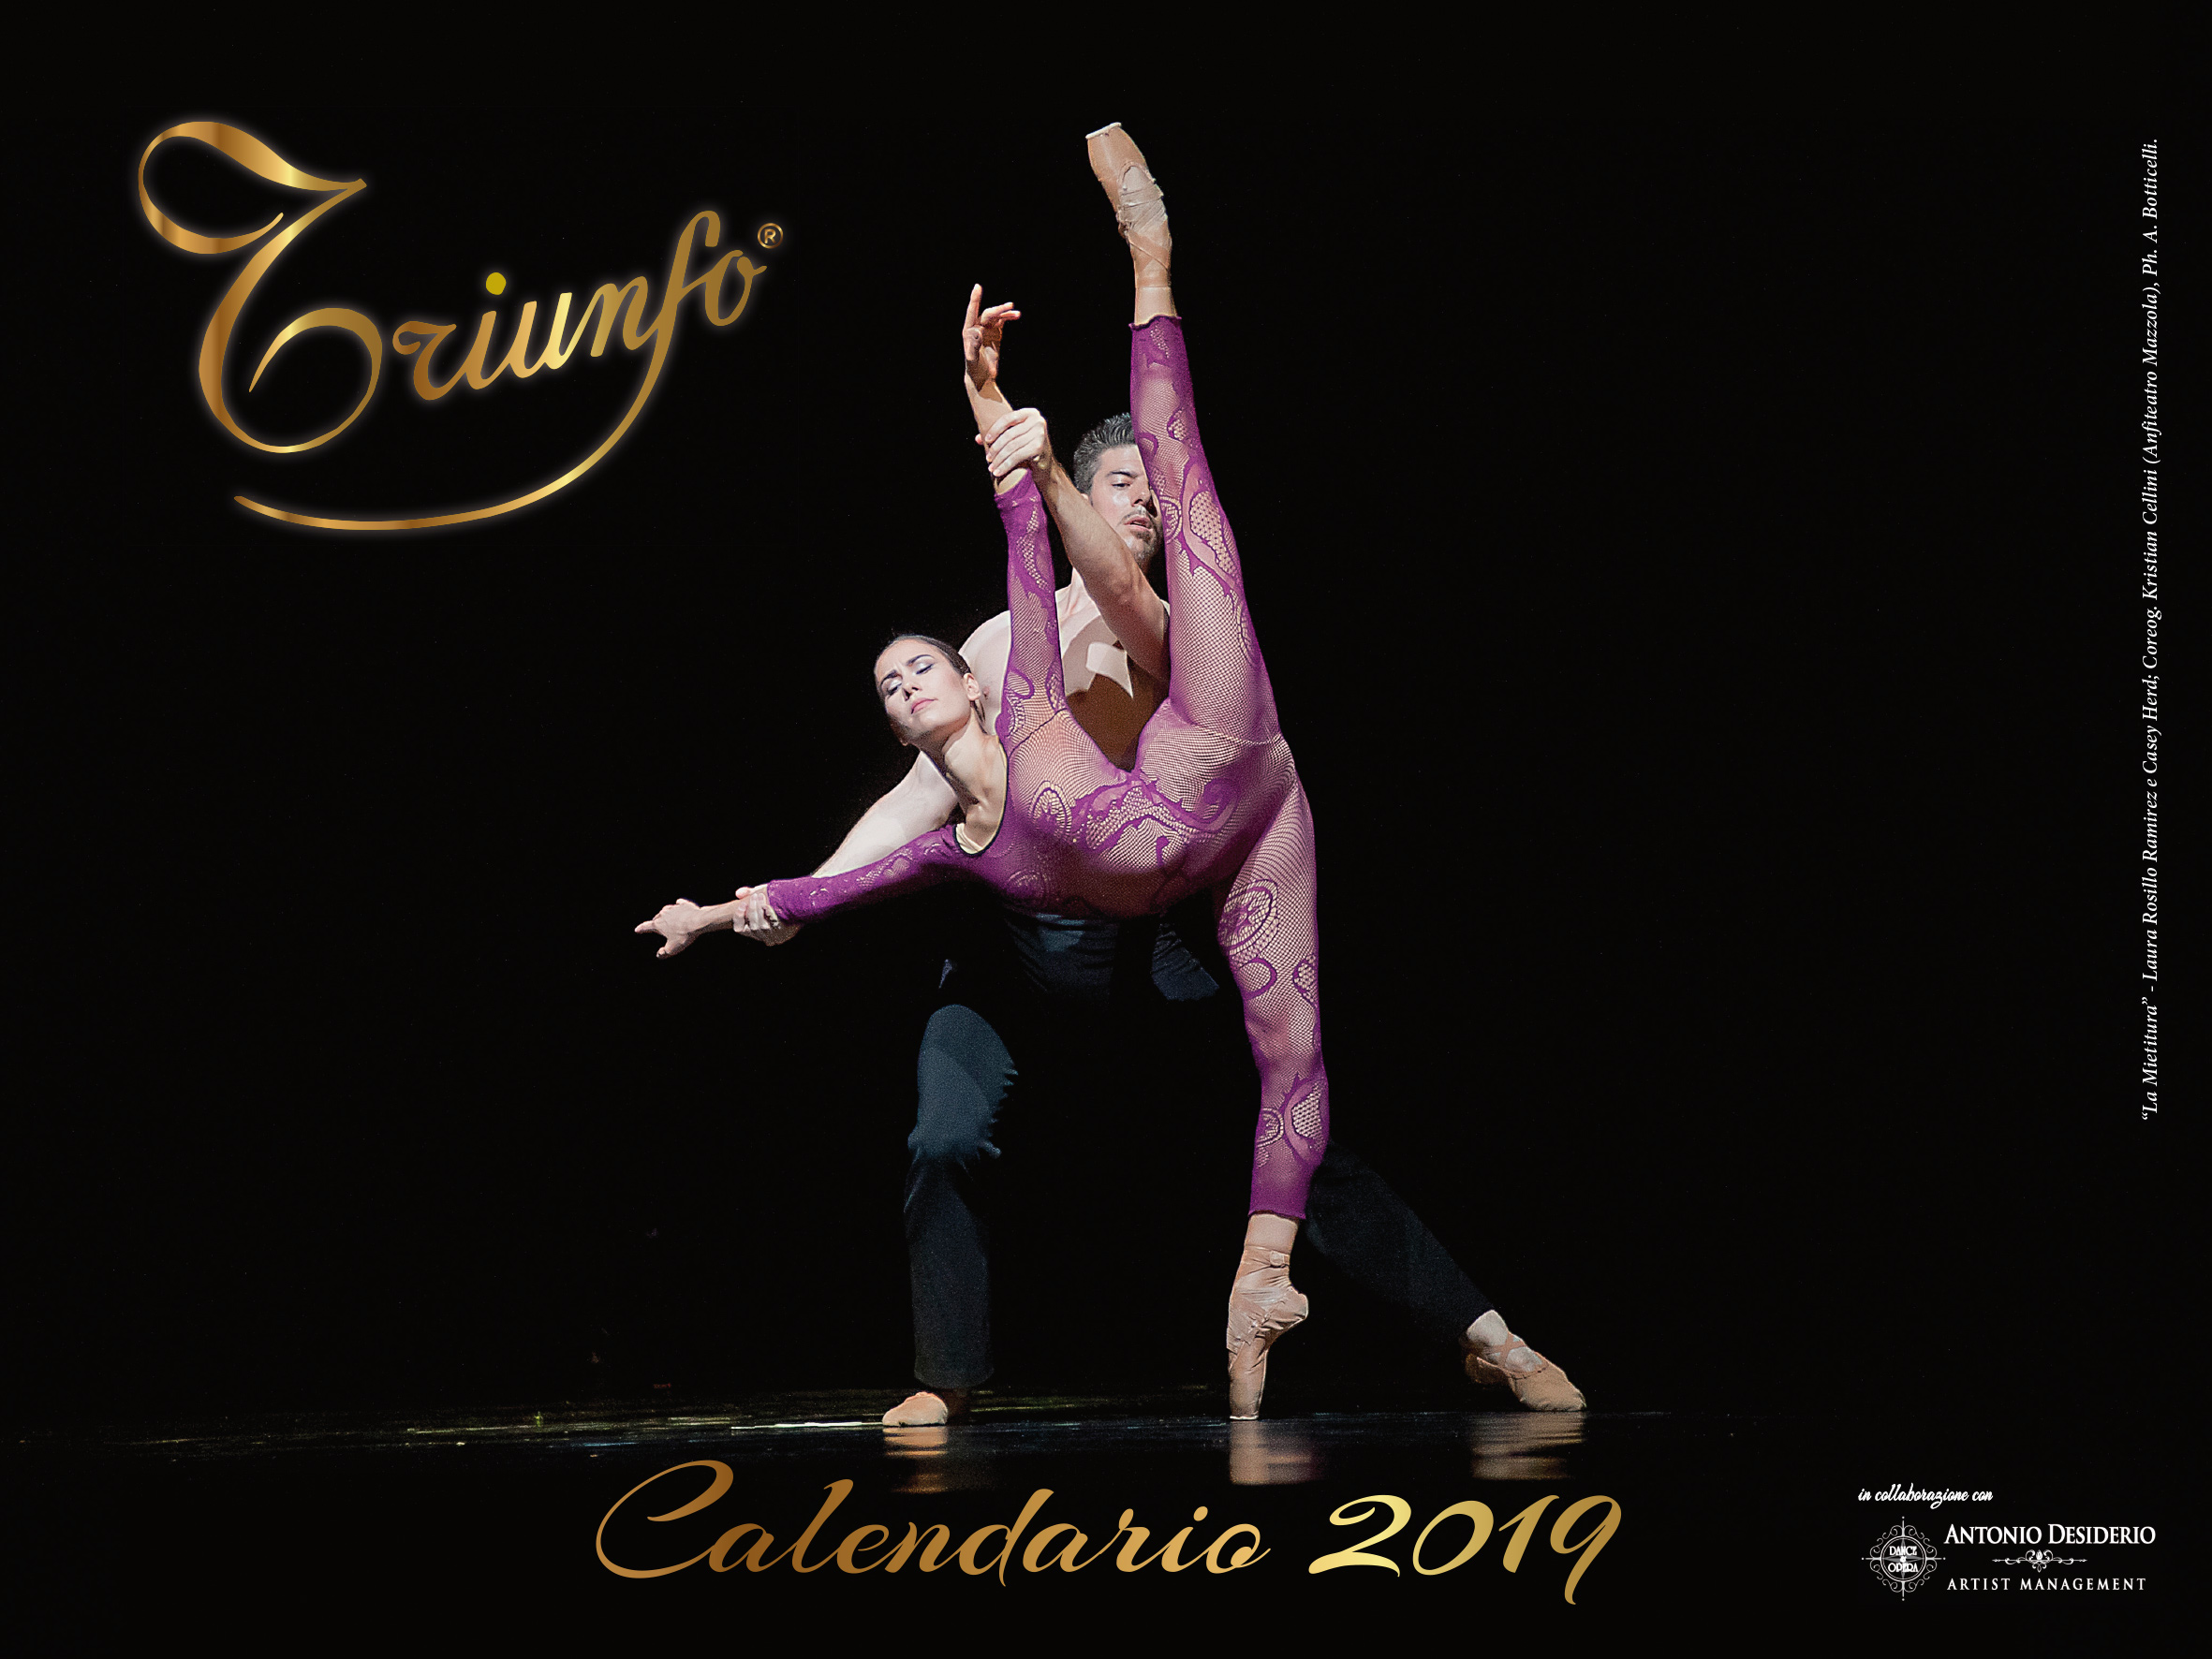 CALENDARIO TRIUNFO 2019 in collaborazione con ANTONIO DESIDERIO ARTIST MANAGEMENT